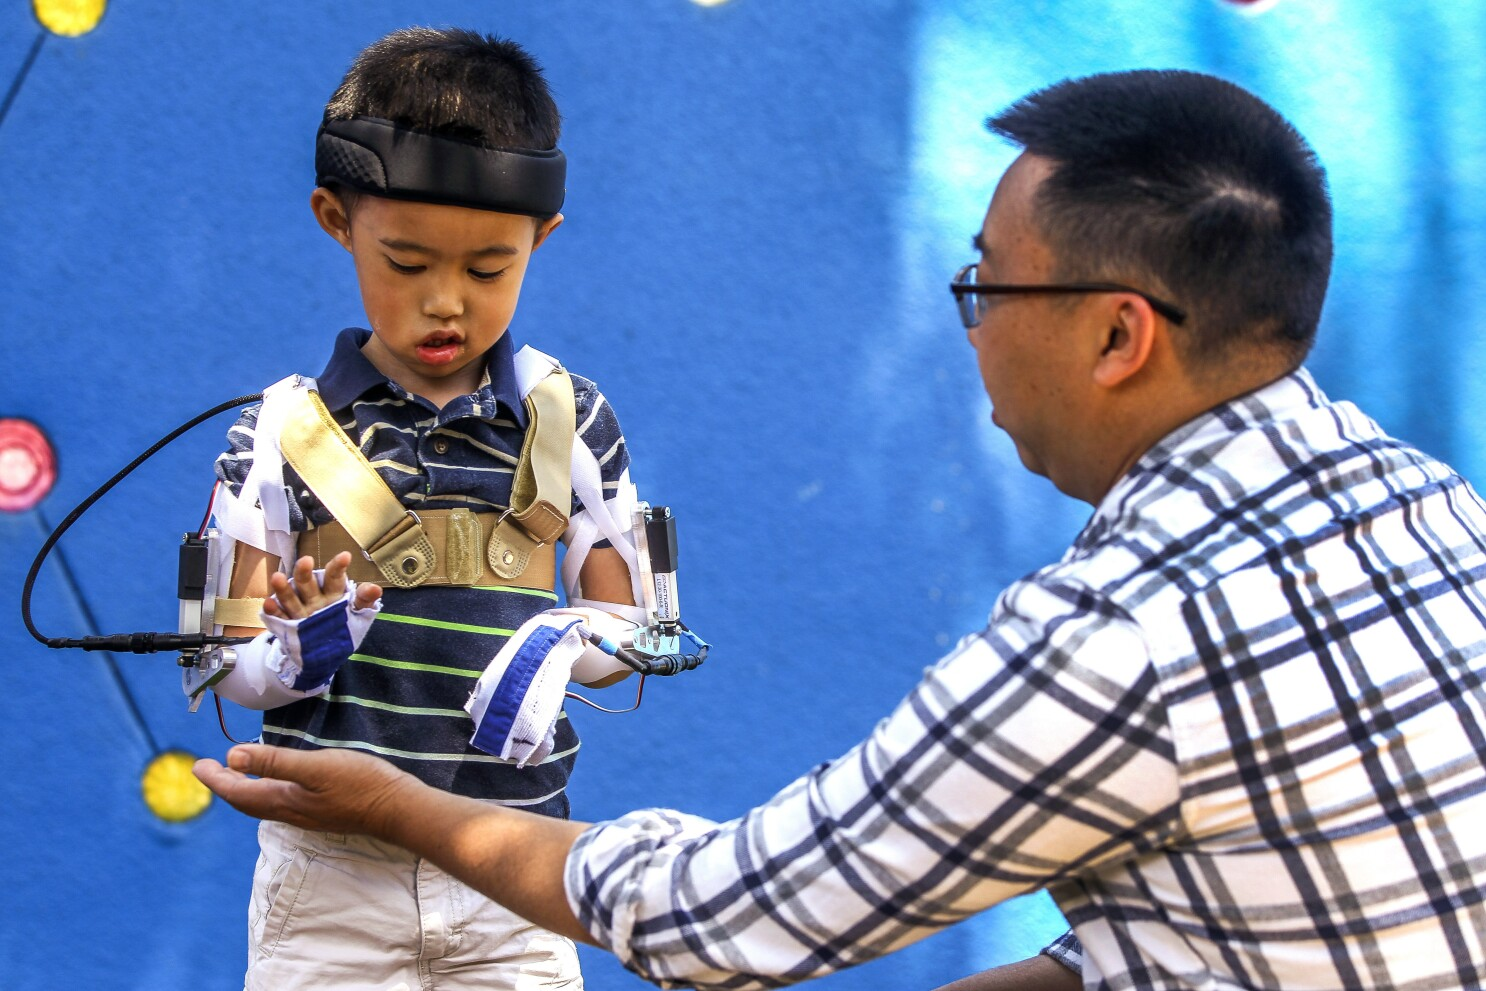 UCSD students restore motion to five-year-old boy's arms - The San